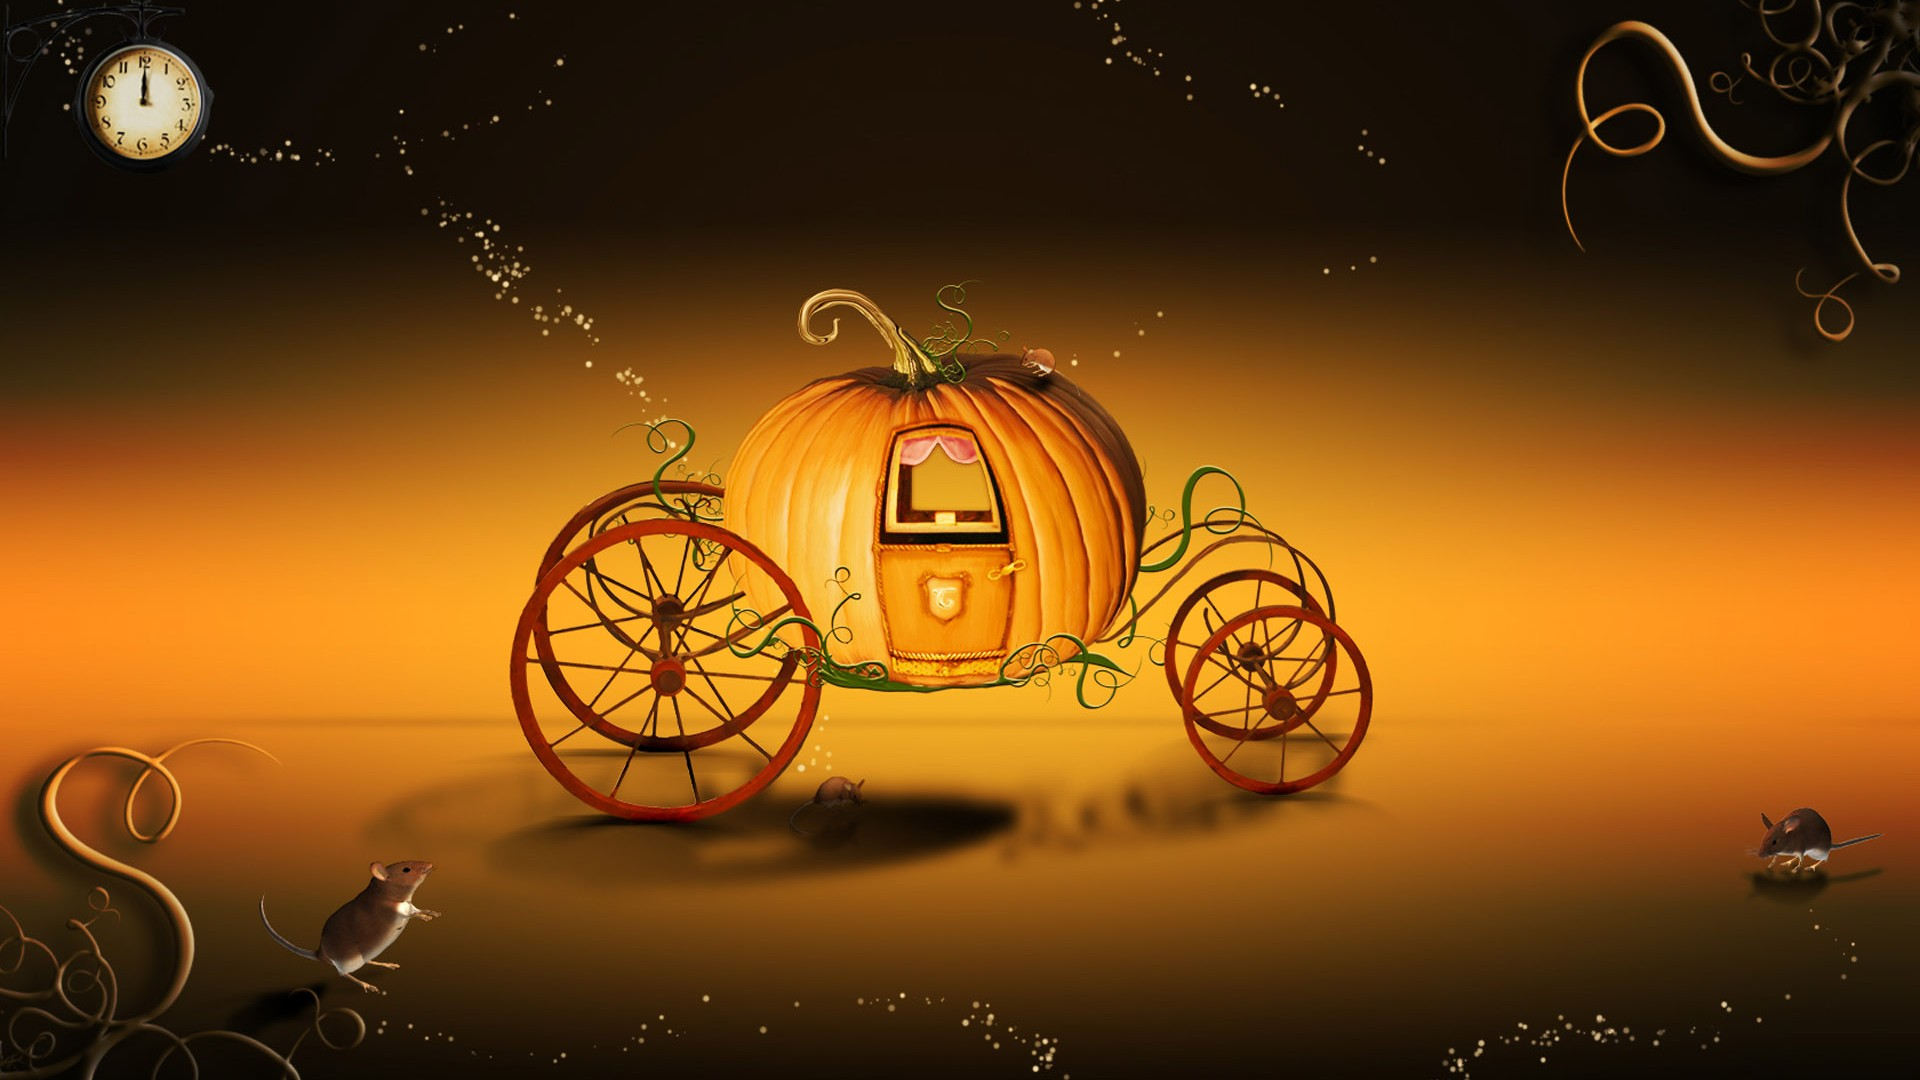 Halloween Pumpkin Cart Wallpaper